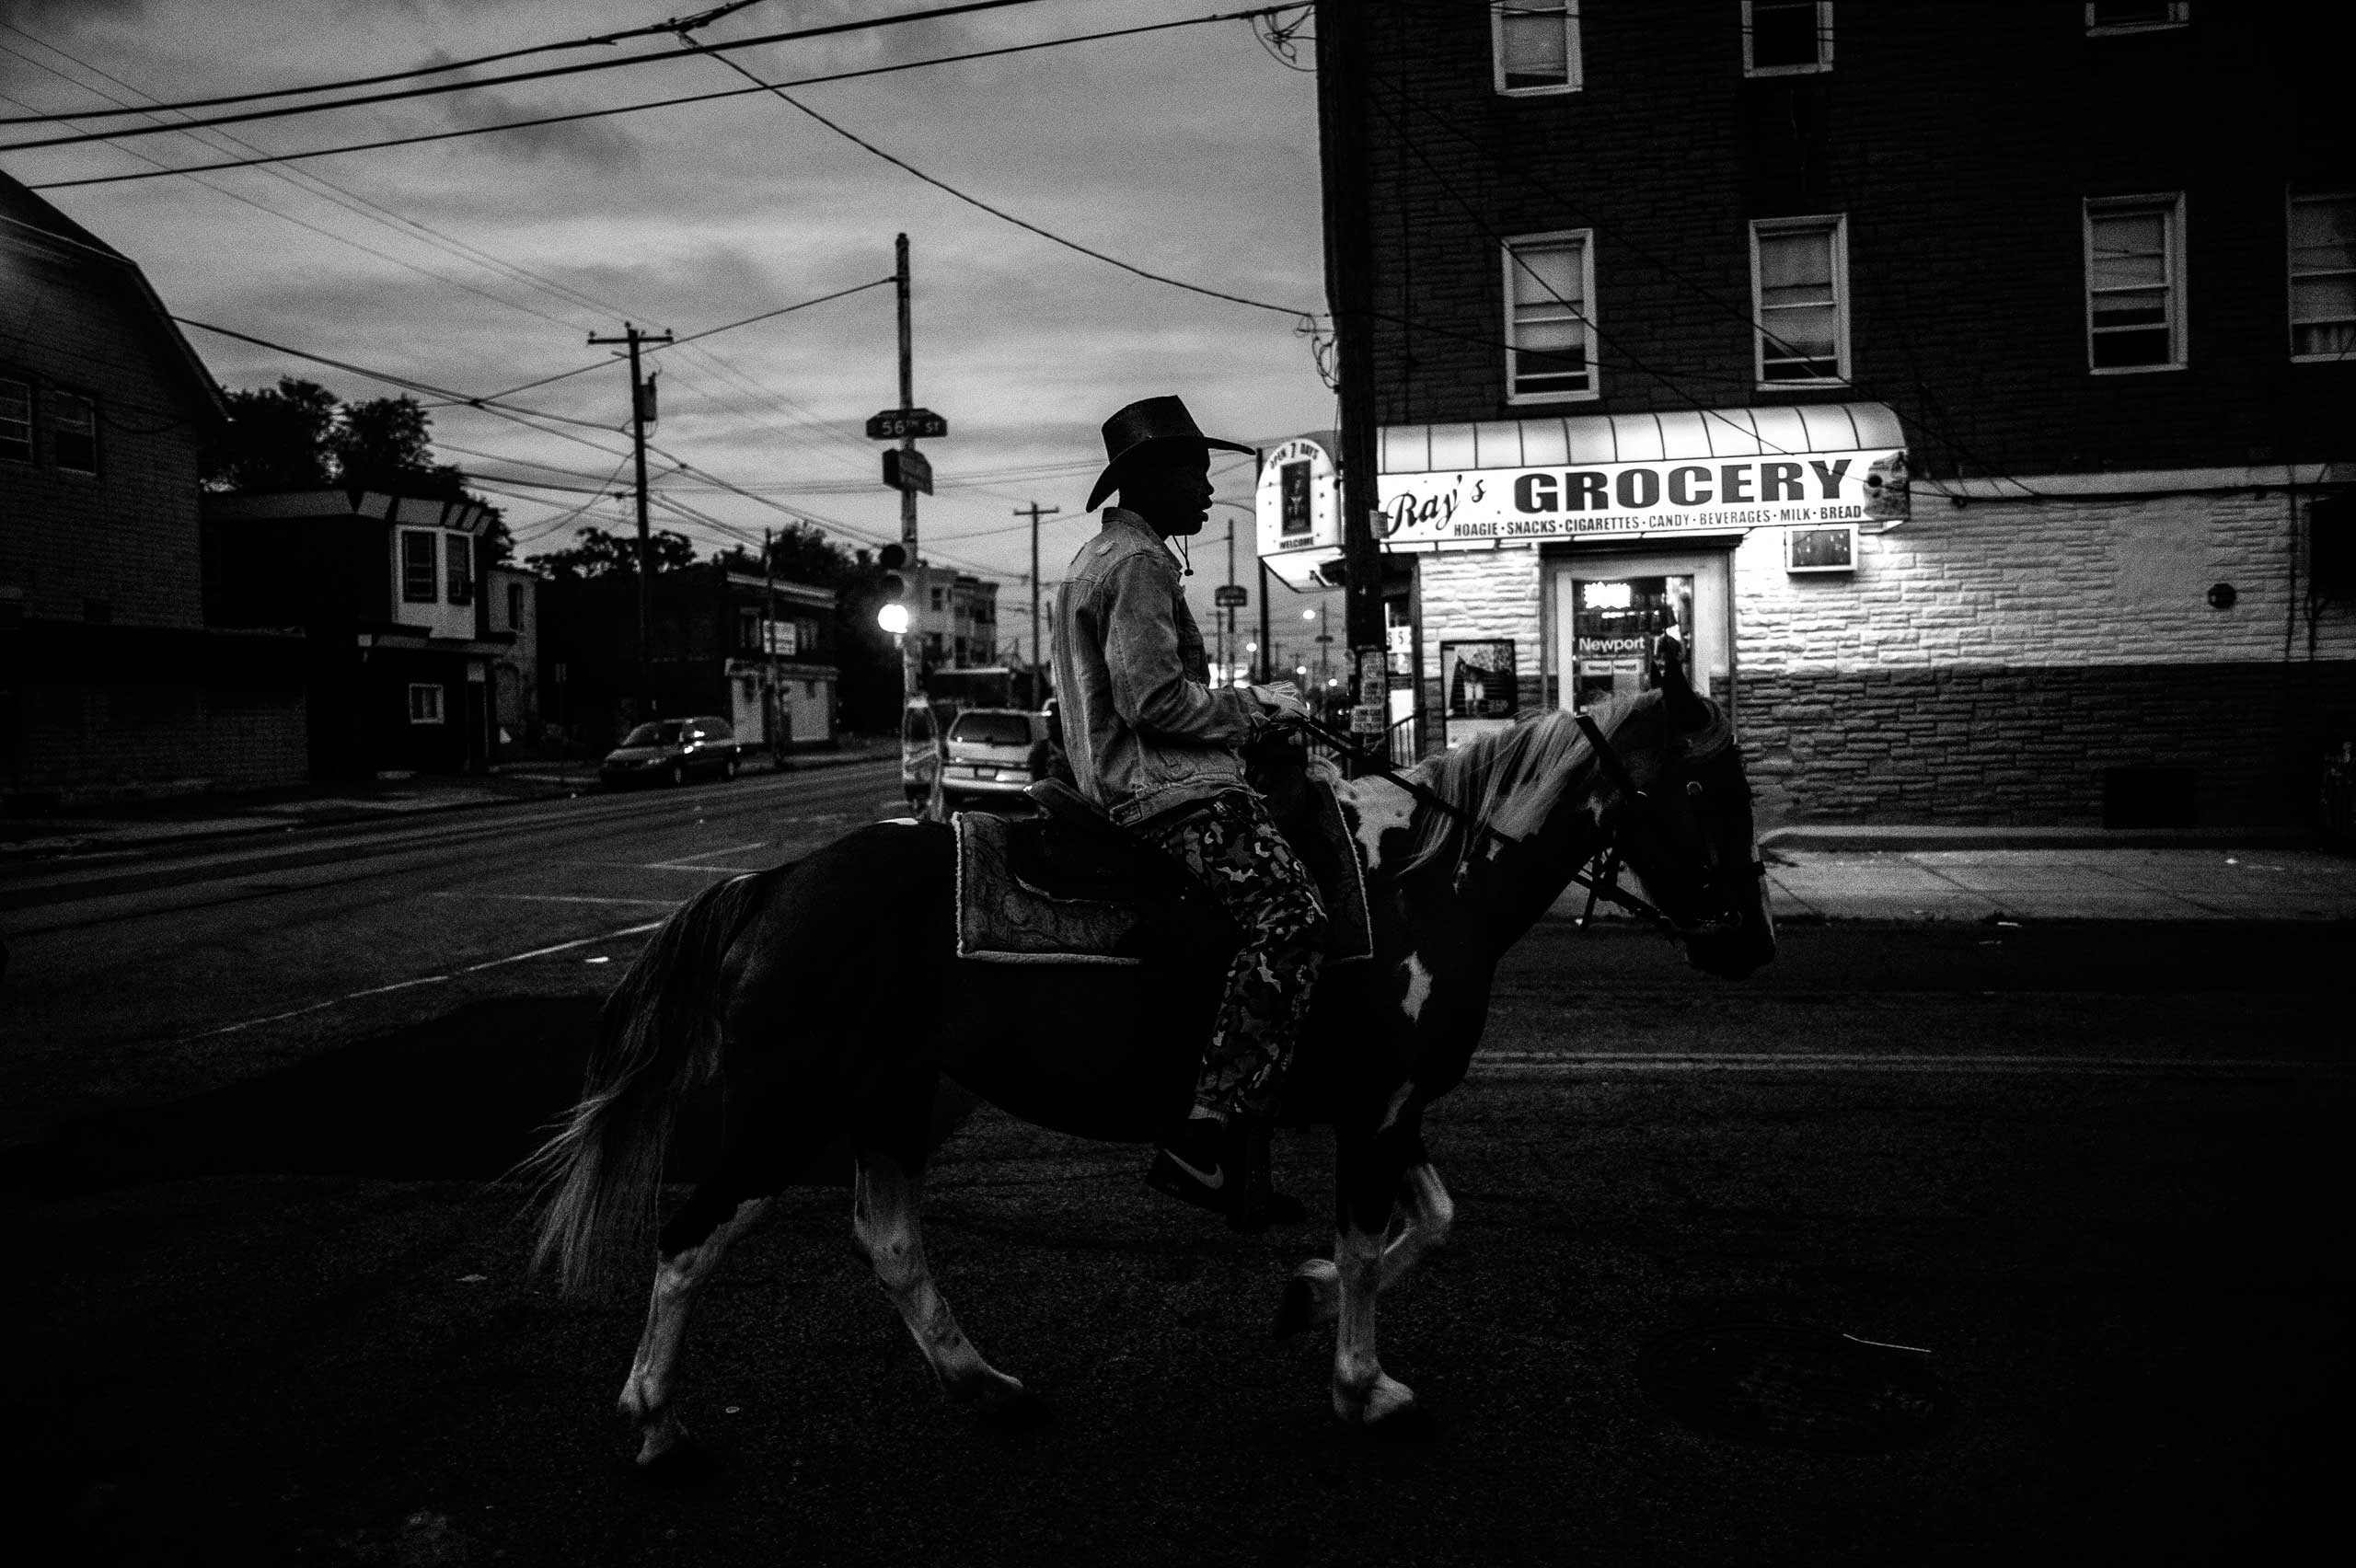 The Wall Street Journal: The Concrete Cowboys of PhiladelphiaShahir Drayton, 17, rides his horse back to the stables after a ride through the streets of southwest Philadelphia.